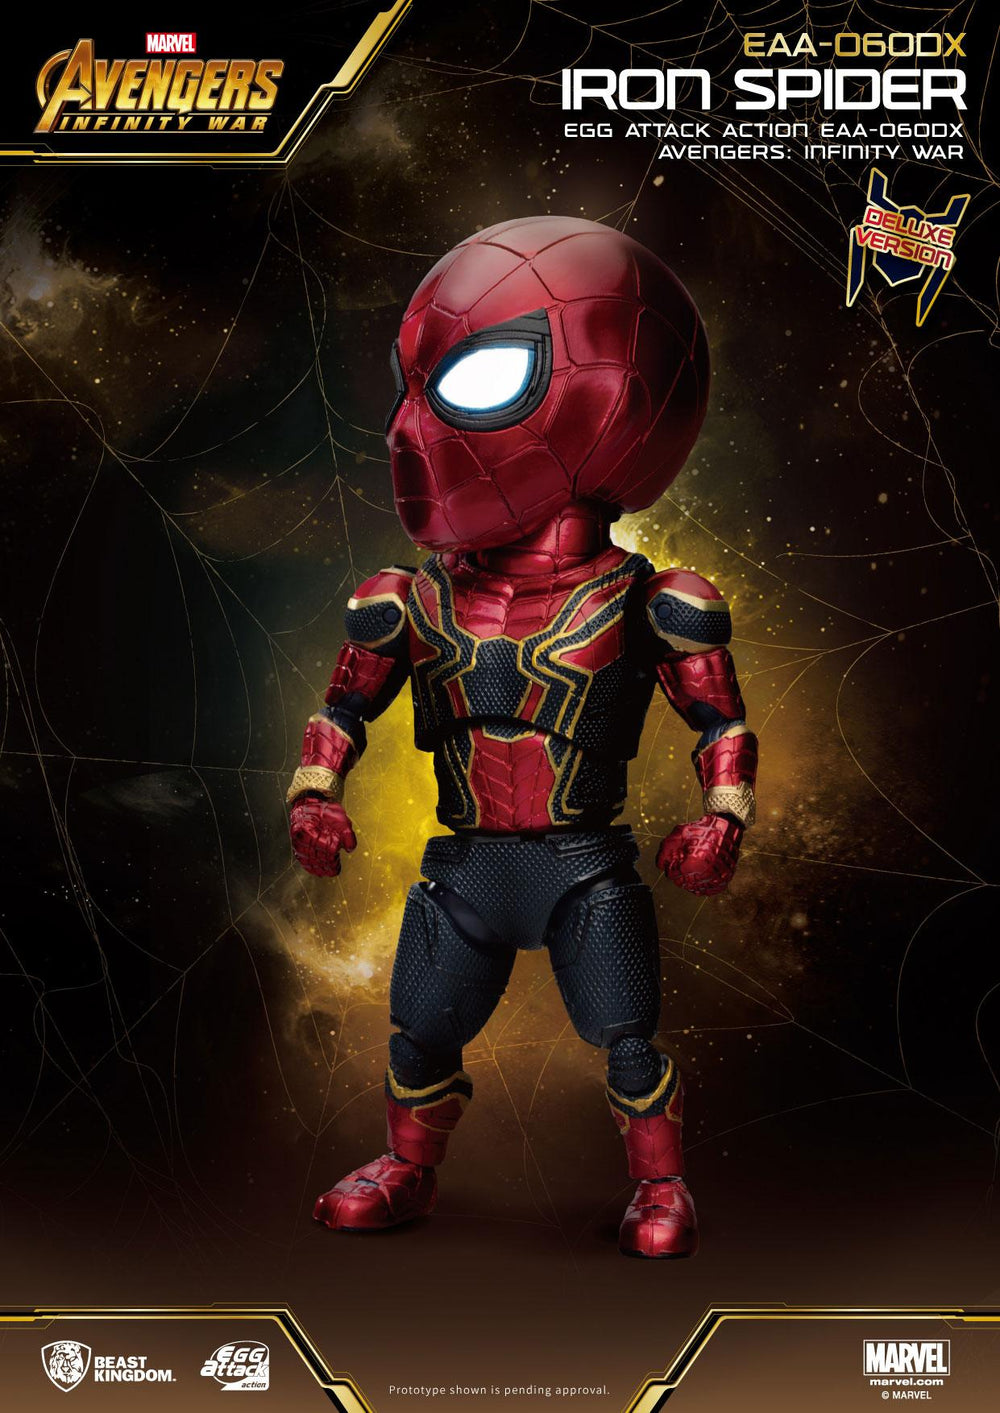 Beast Kingdom Avengers: Infinity War Iron Spider Deluxe Version Egg Attack Action Figure